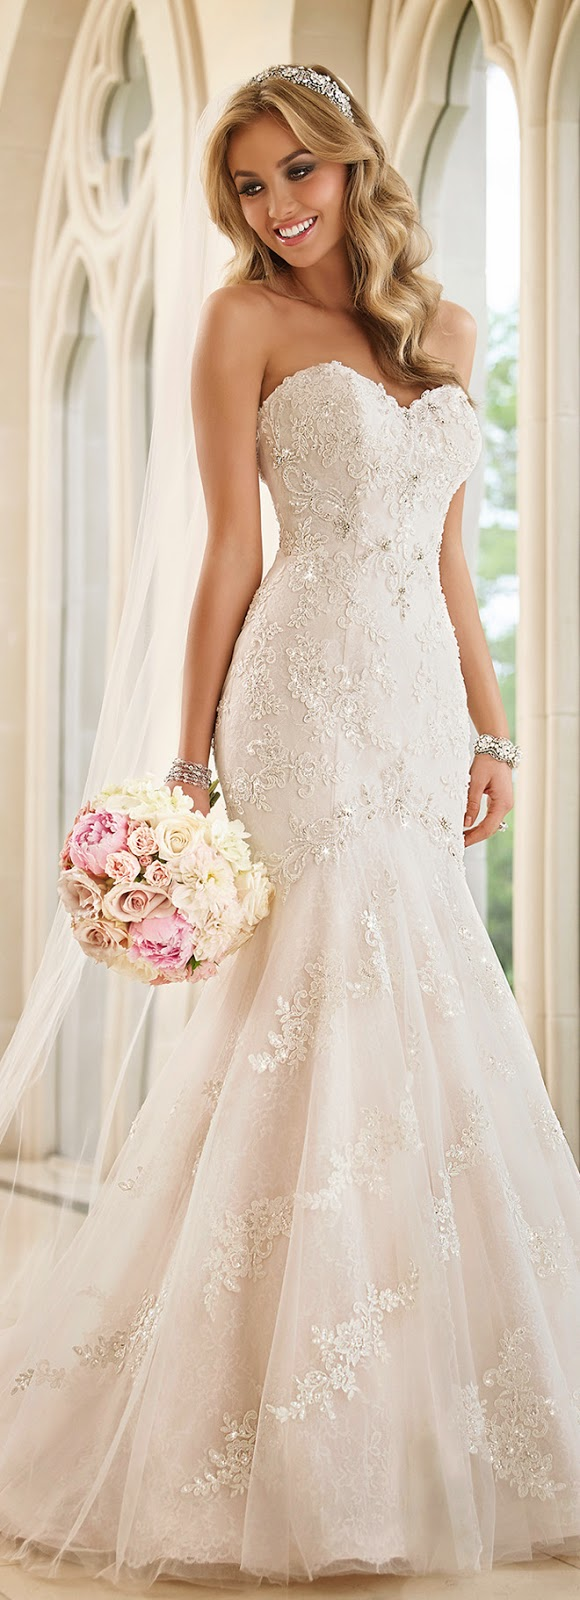 Stella York Fall 2015 Bridal Collection : Special Preview - Belle ...